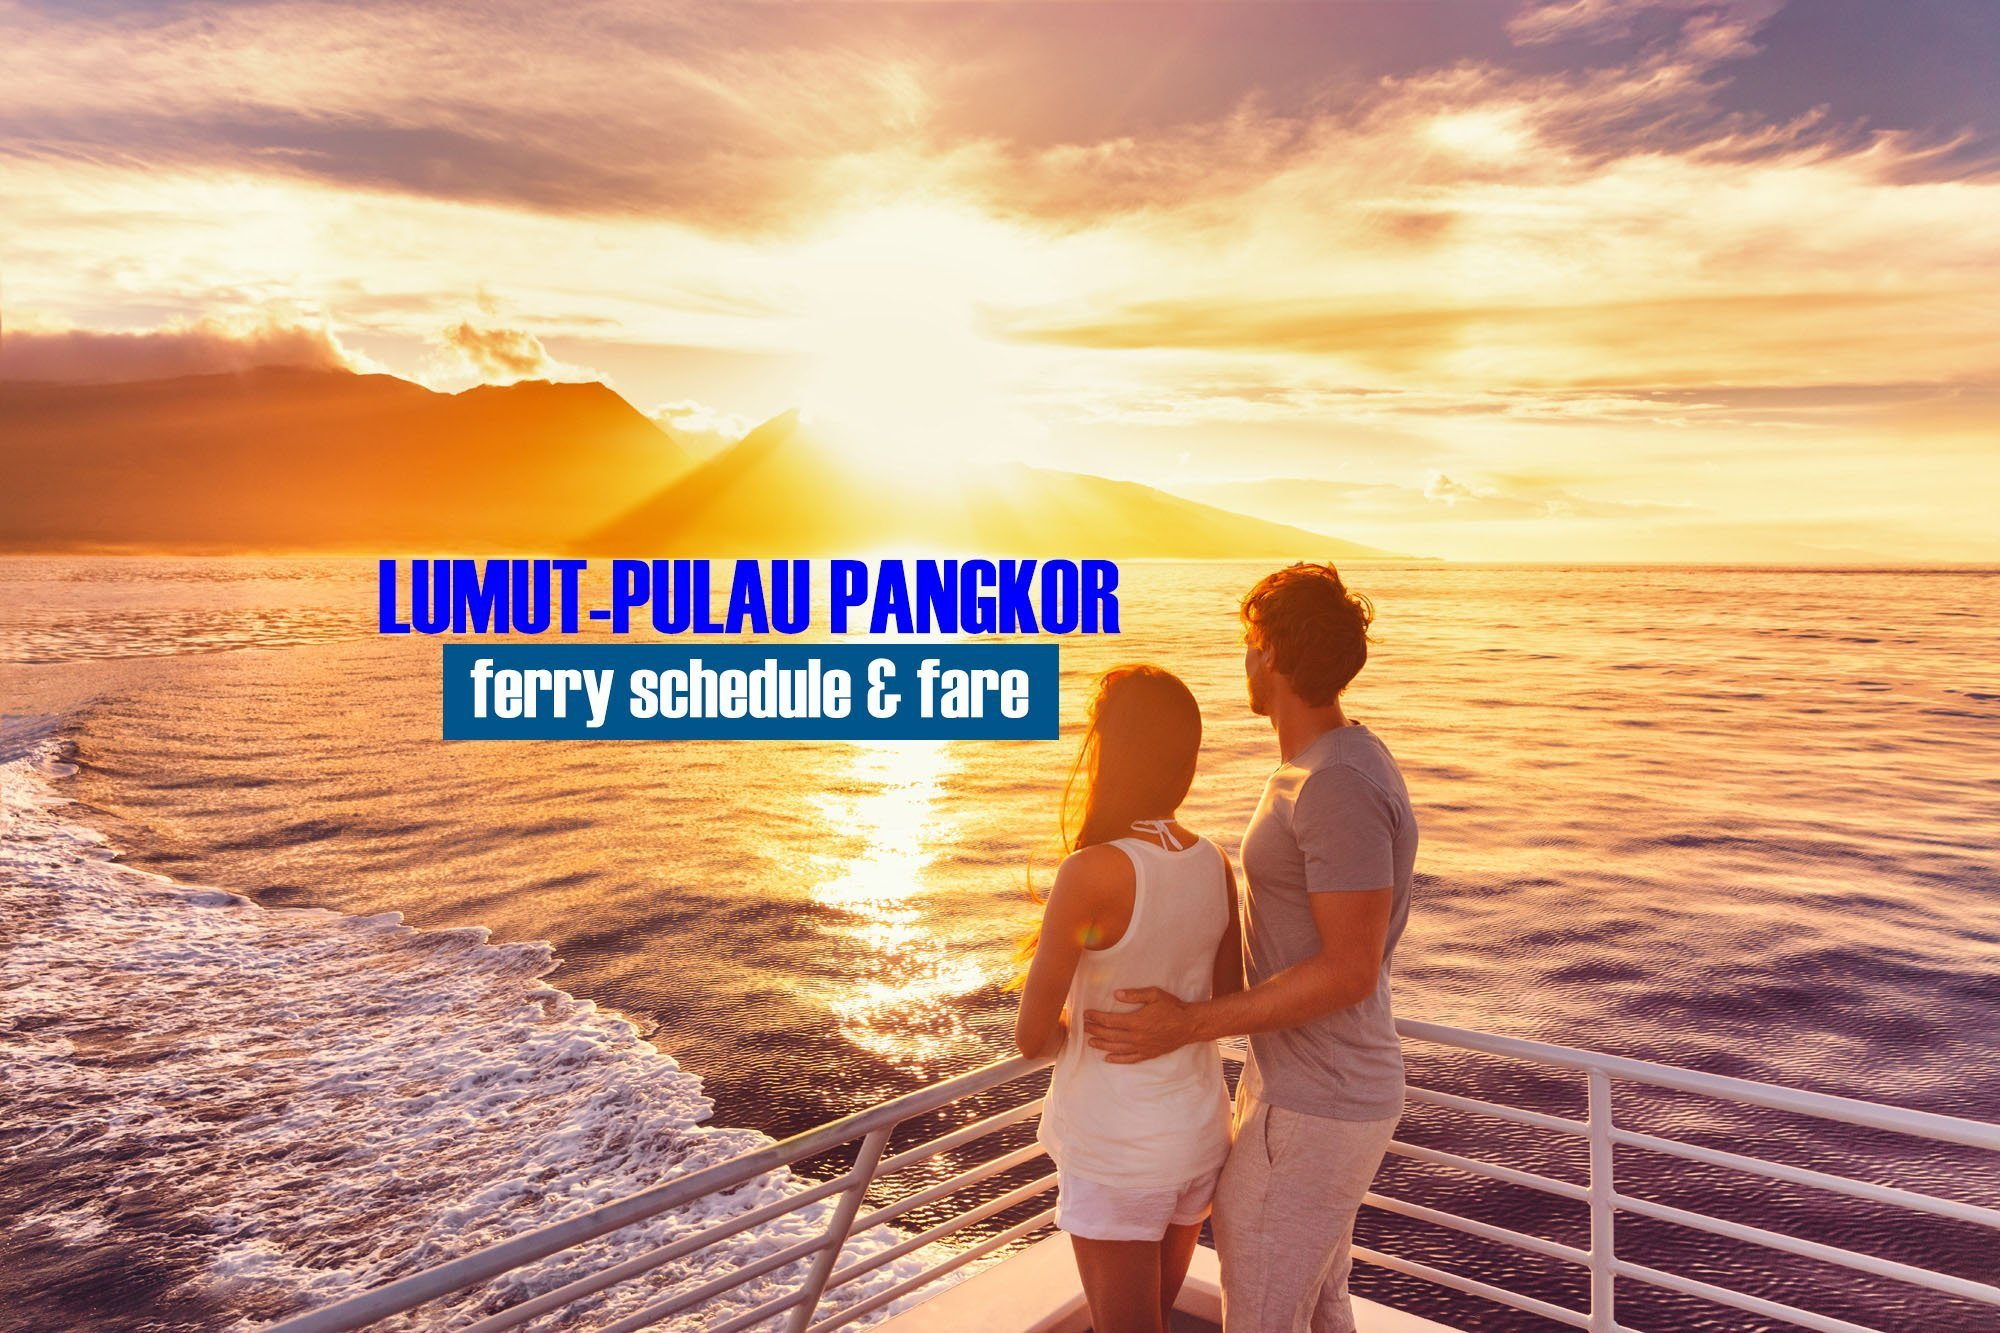 Lumut to Pulau Pangkor: 2019 Ferry Schedule and Fare